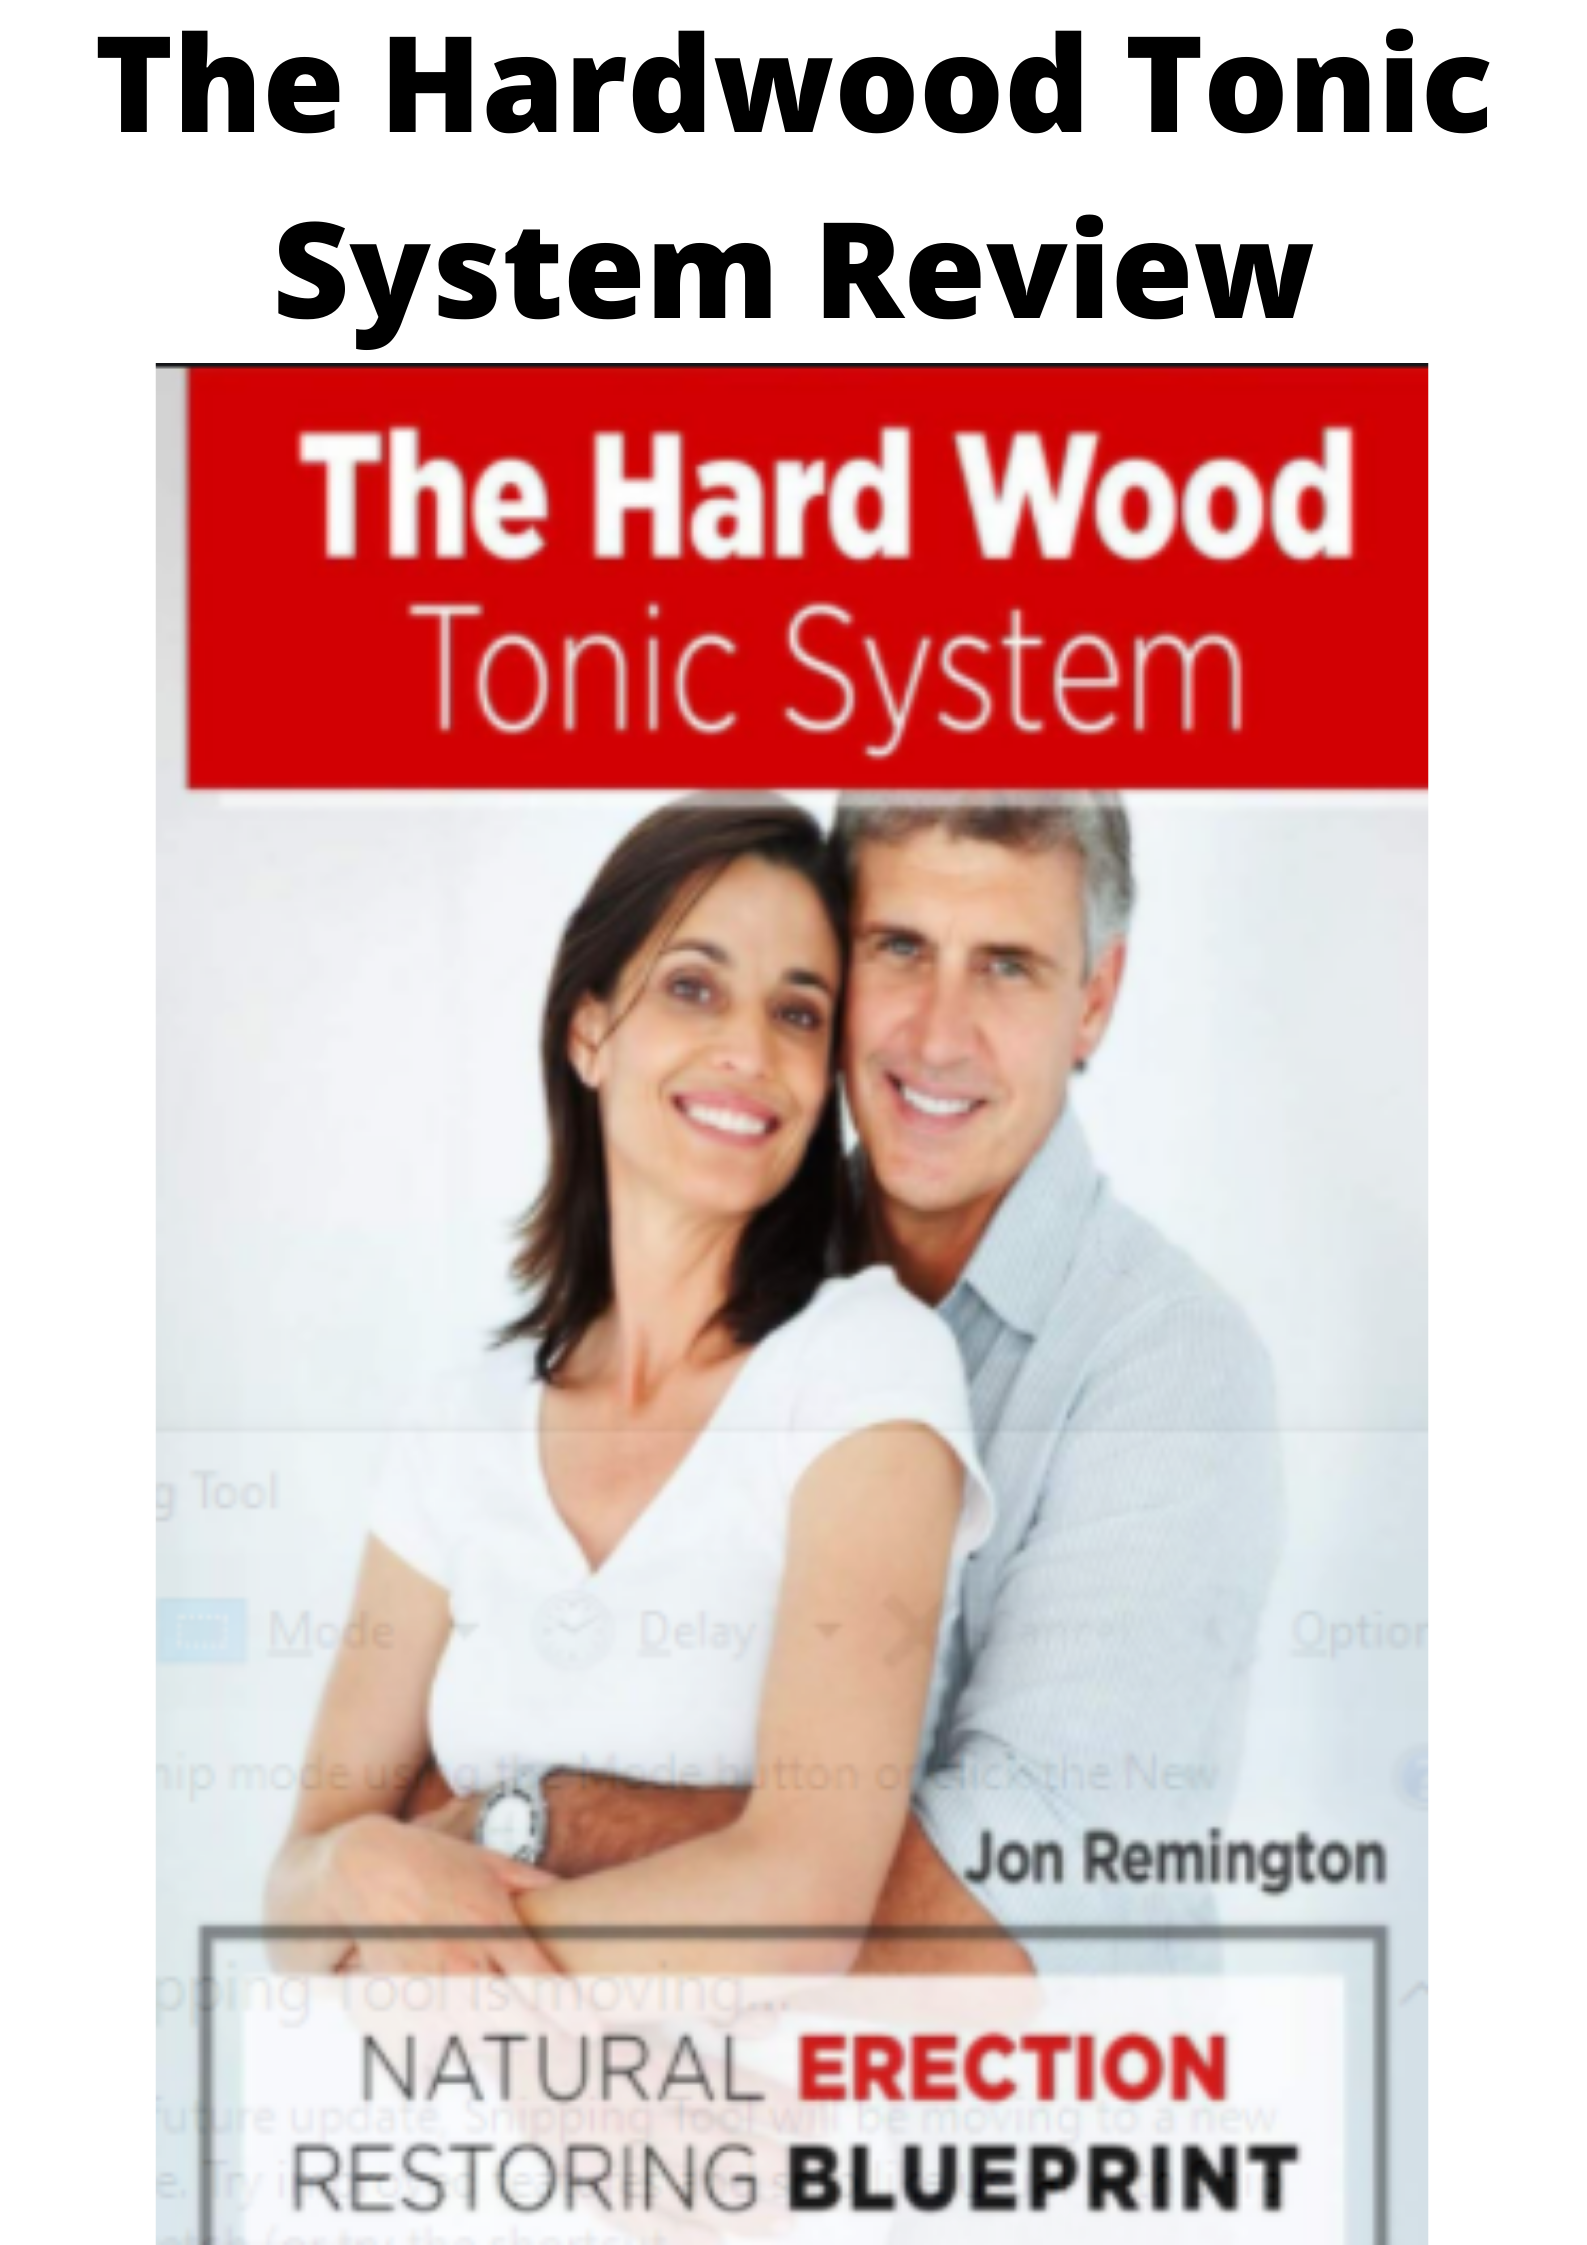 Hardwood Tonic System Reviews-The biggest scam?